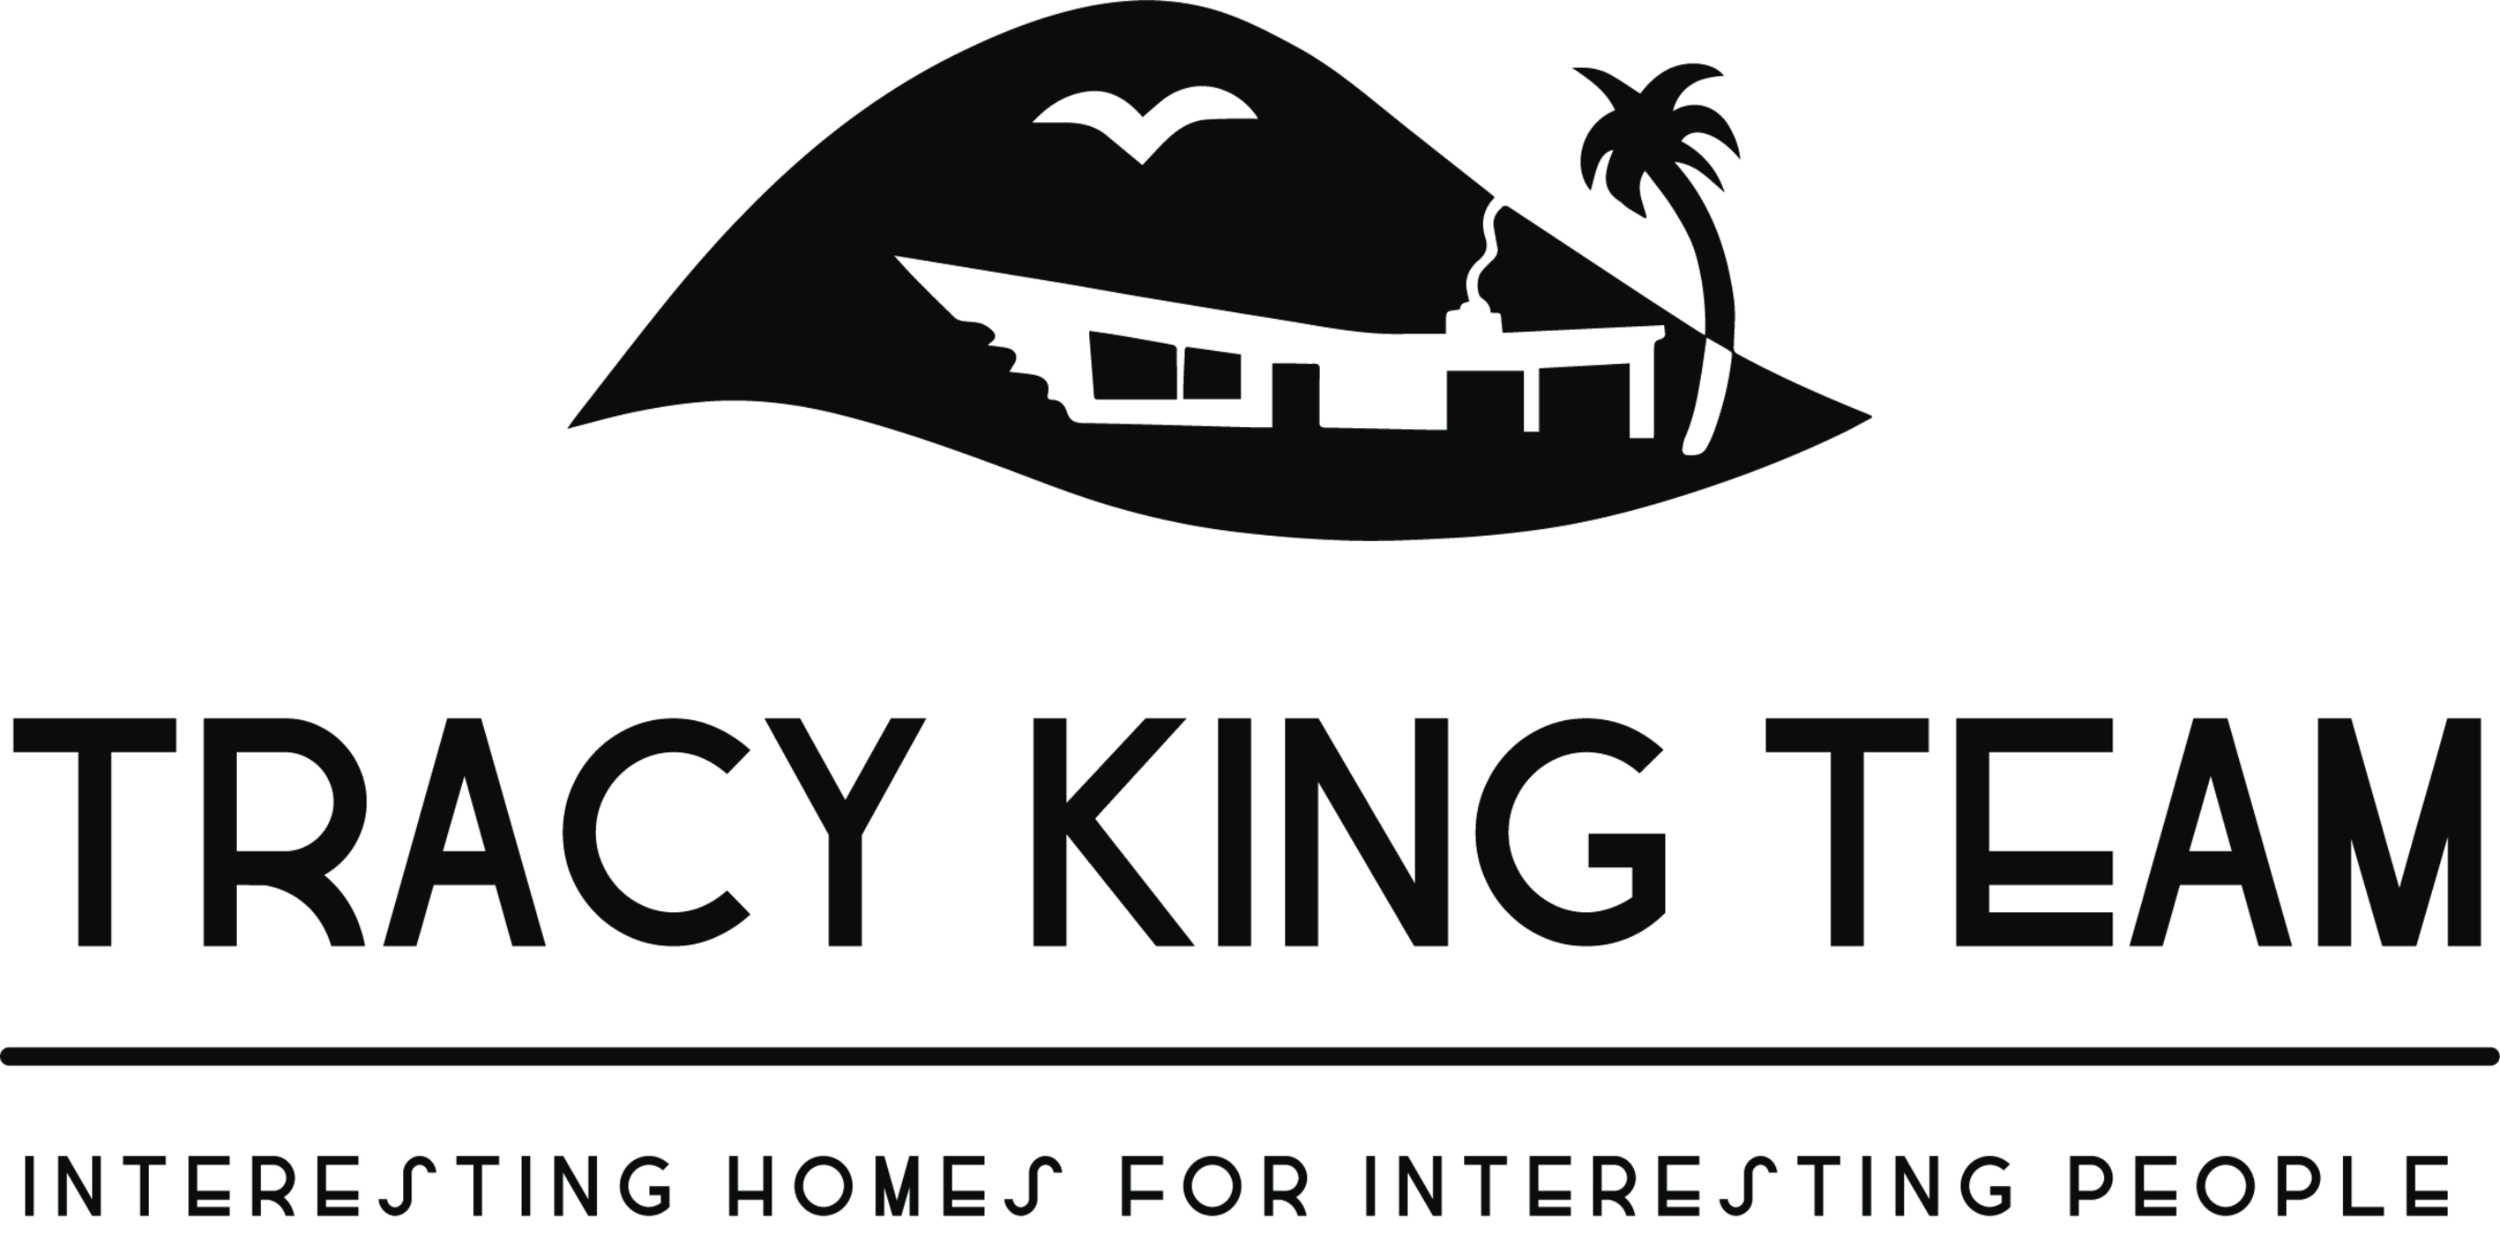 Tracy King Team  (323) 274-2148 2120 Colorado Blvd, Suite #1 Eagle Rock, CA 90041  https://www.tracyking.com/   When you work with one of us, you work with all of us. That's just how we do business. As representatives of both buyers and sellers, we understand the complexities and milestones involved on either side of the real estate transaction and strive to simplify the experience on behalf of our esteemed clientele.